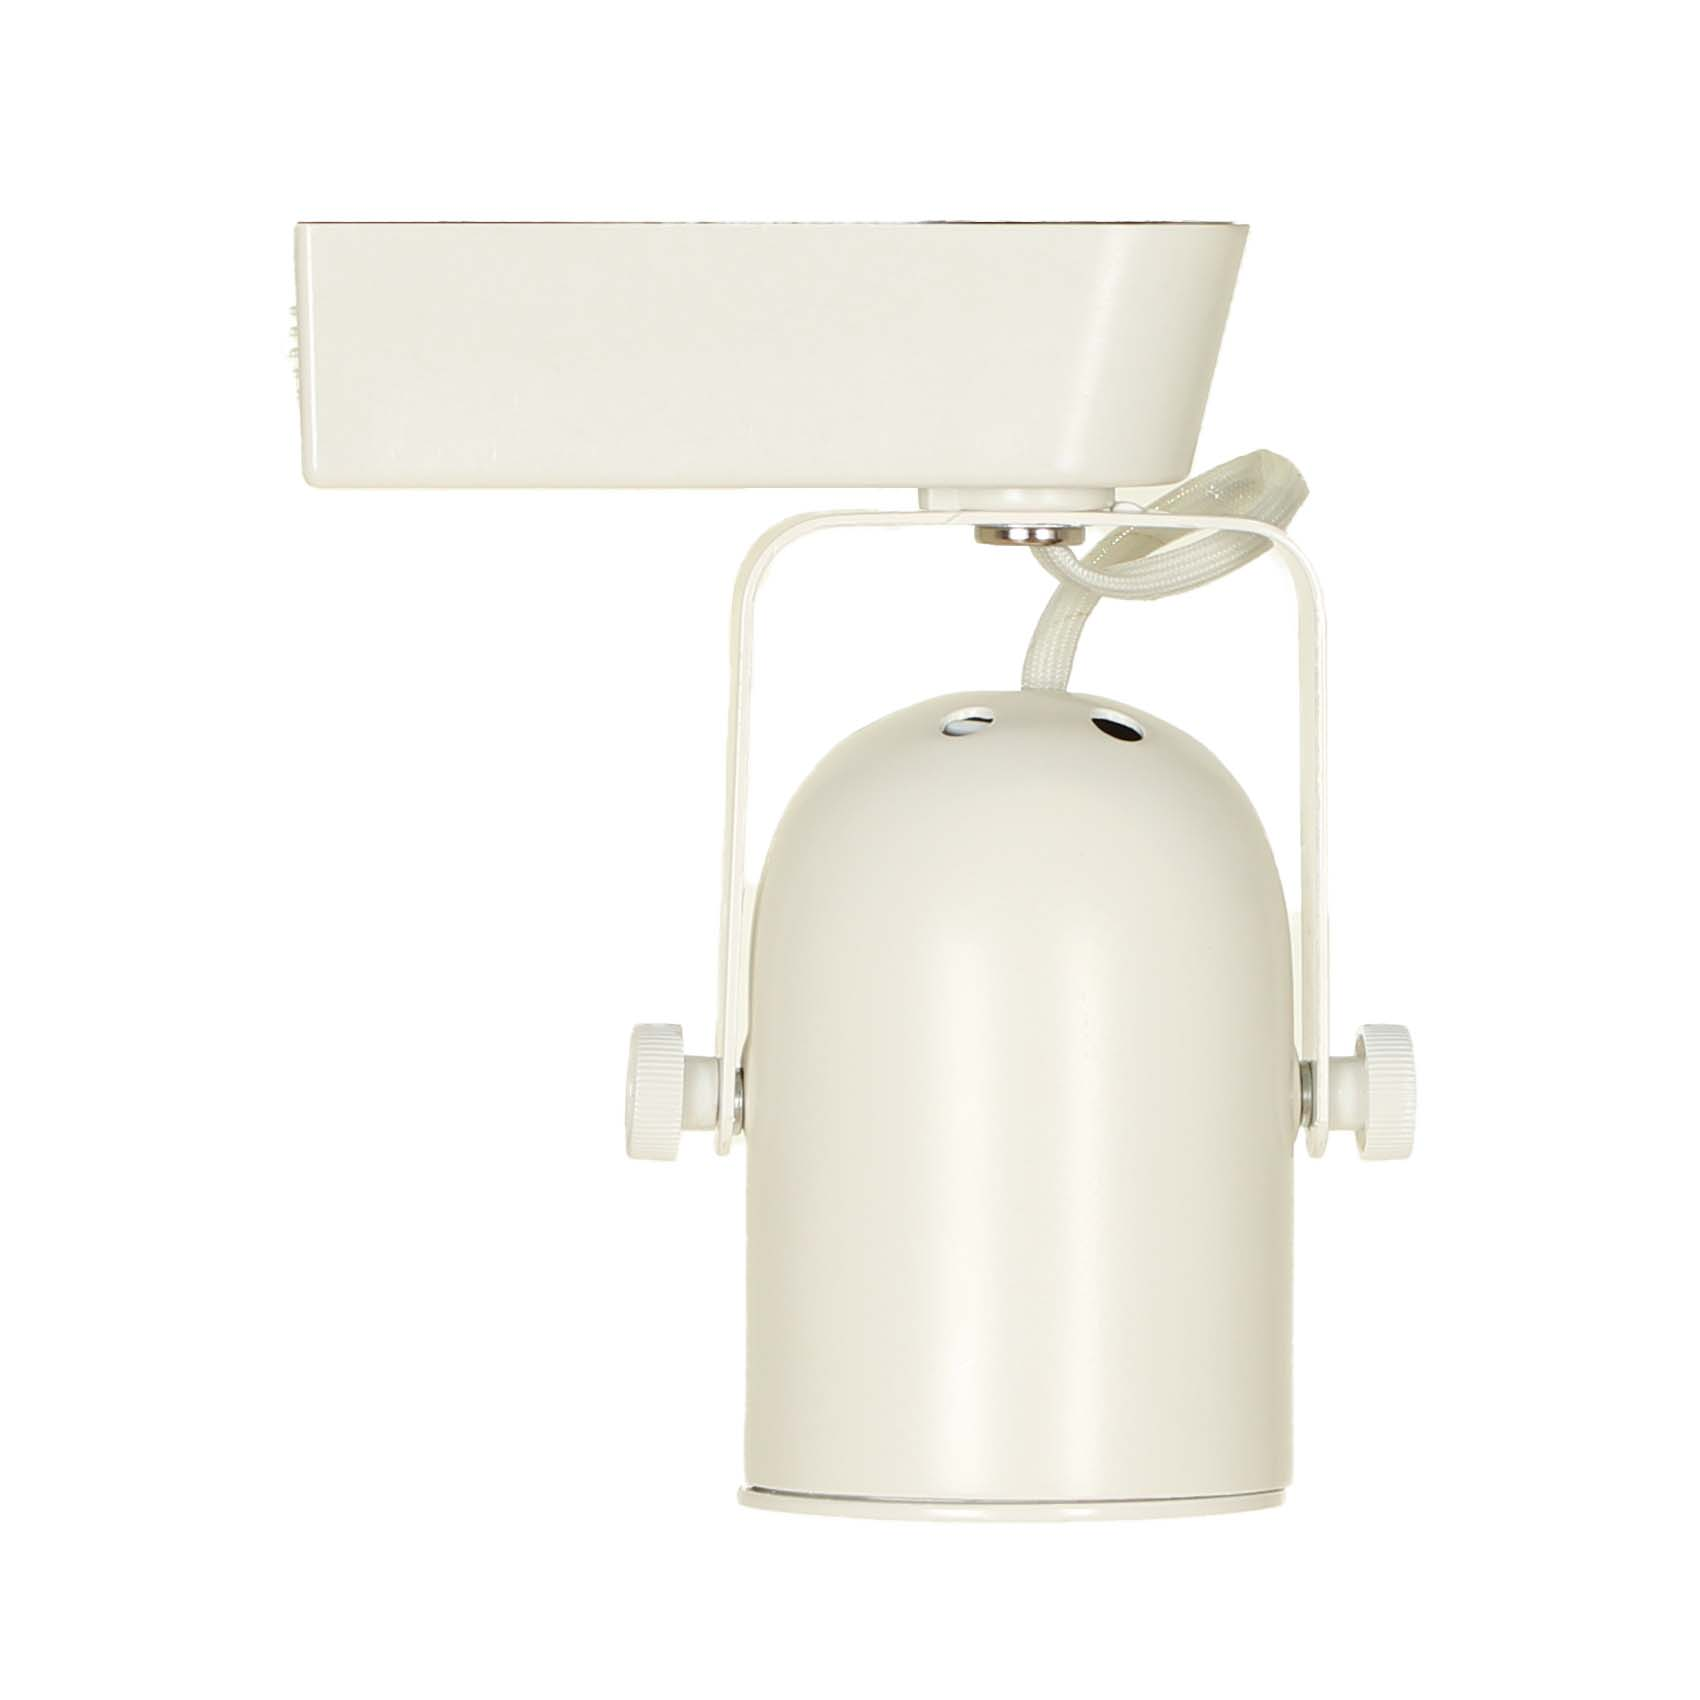 shop led track lighting h or j type ul cul listed 60088 direct